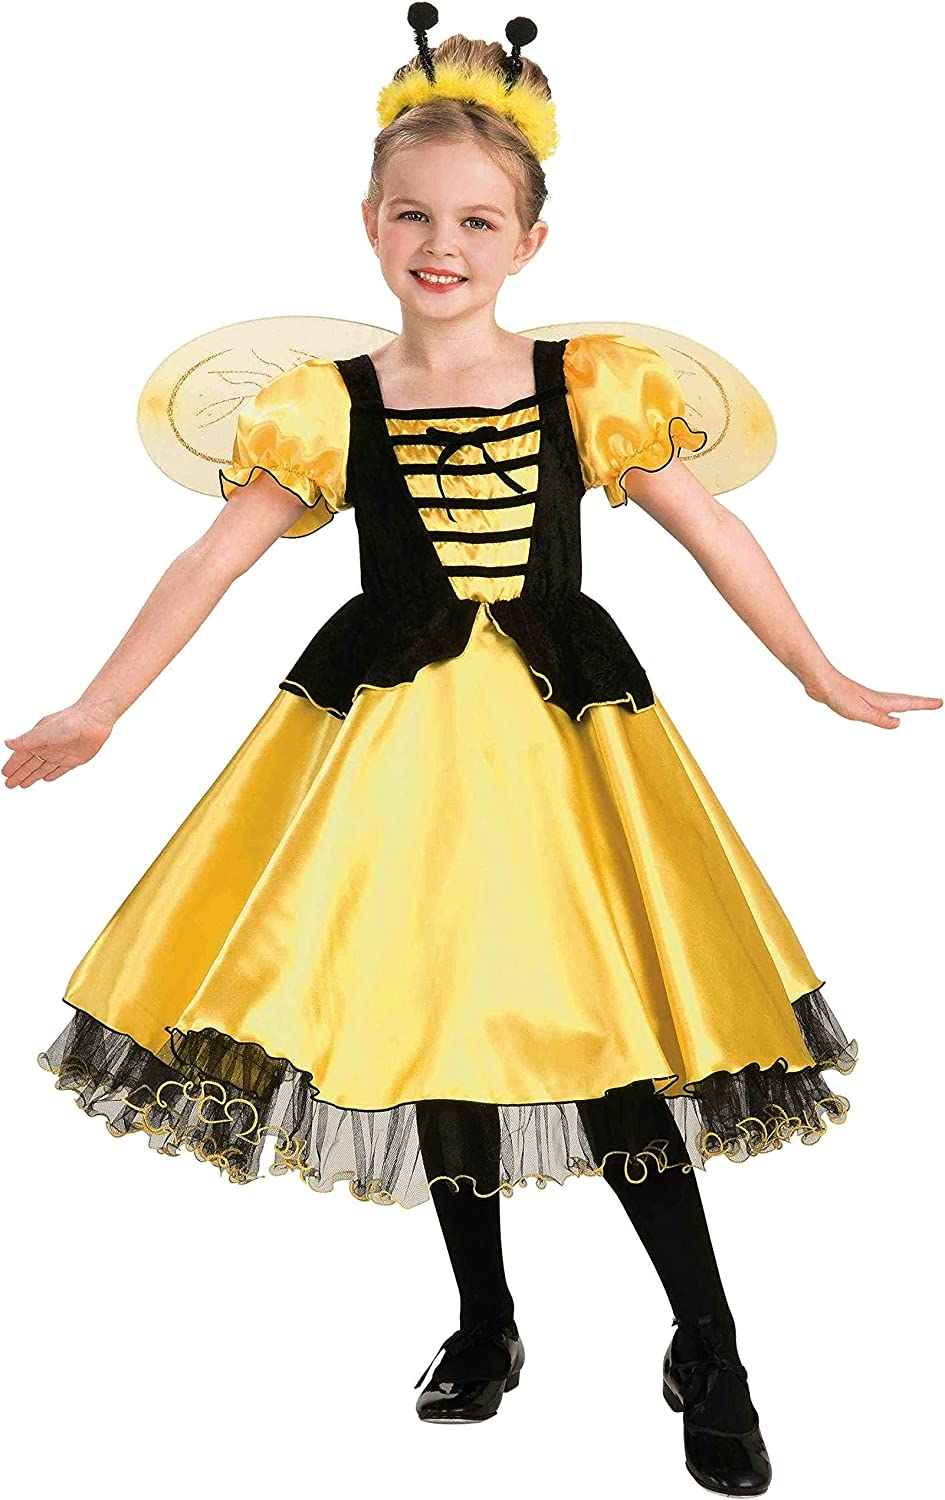 Forum Novelties mart Royal Honey Small Child's At the price of surprise Costume